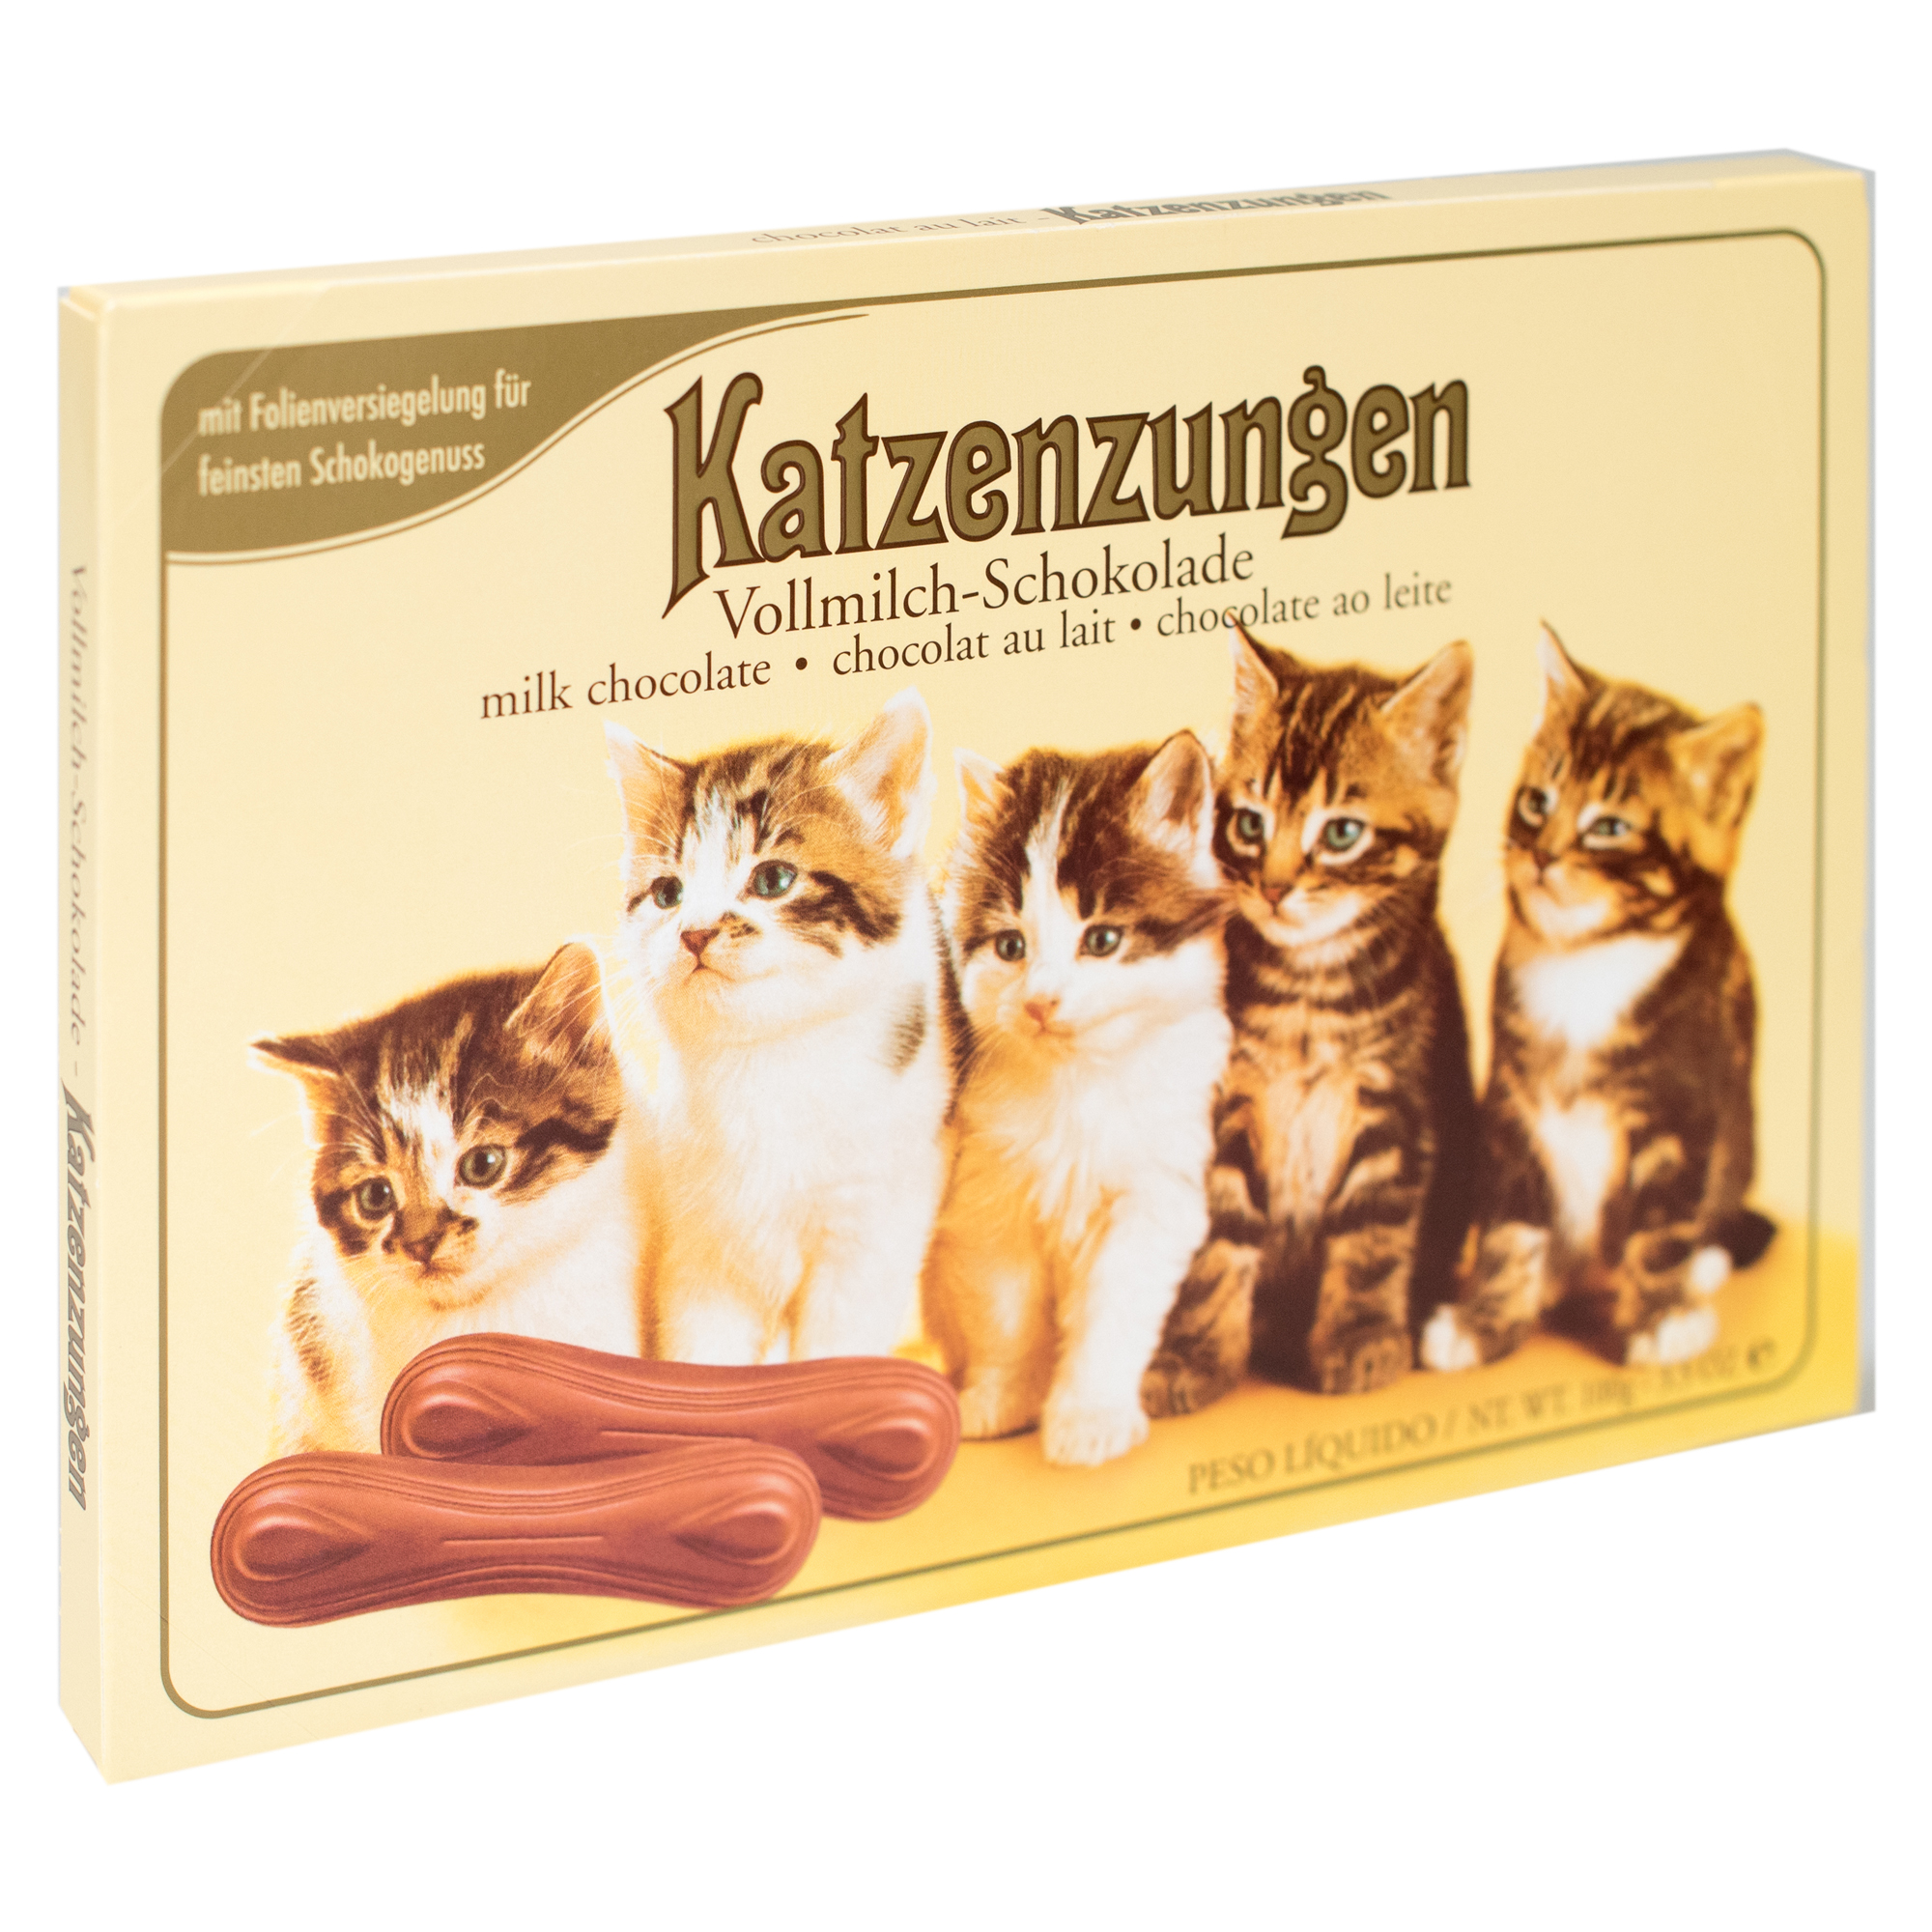 Sarotti Milk Chocolate Cat Tongues 3.5oz